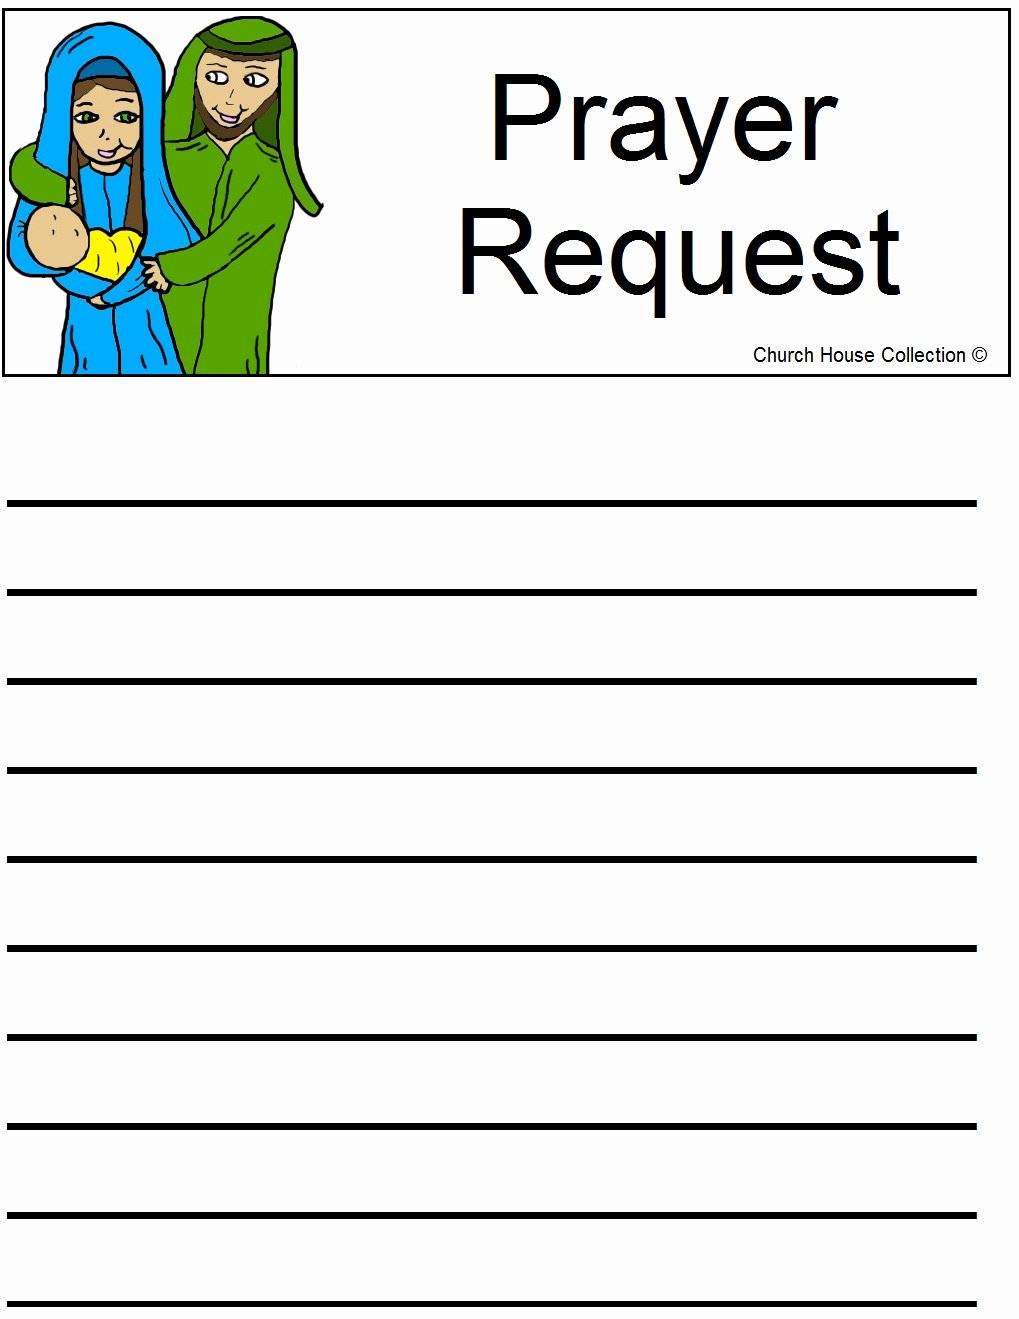 Prayer Request forms Templates Lovely Church House Collection Blog Nativity Sunday School Lesson